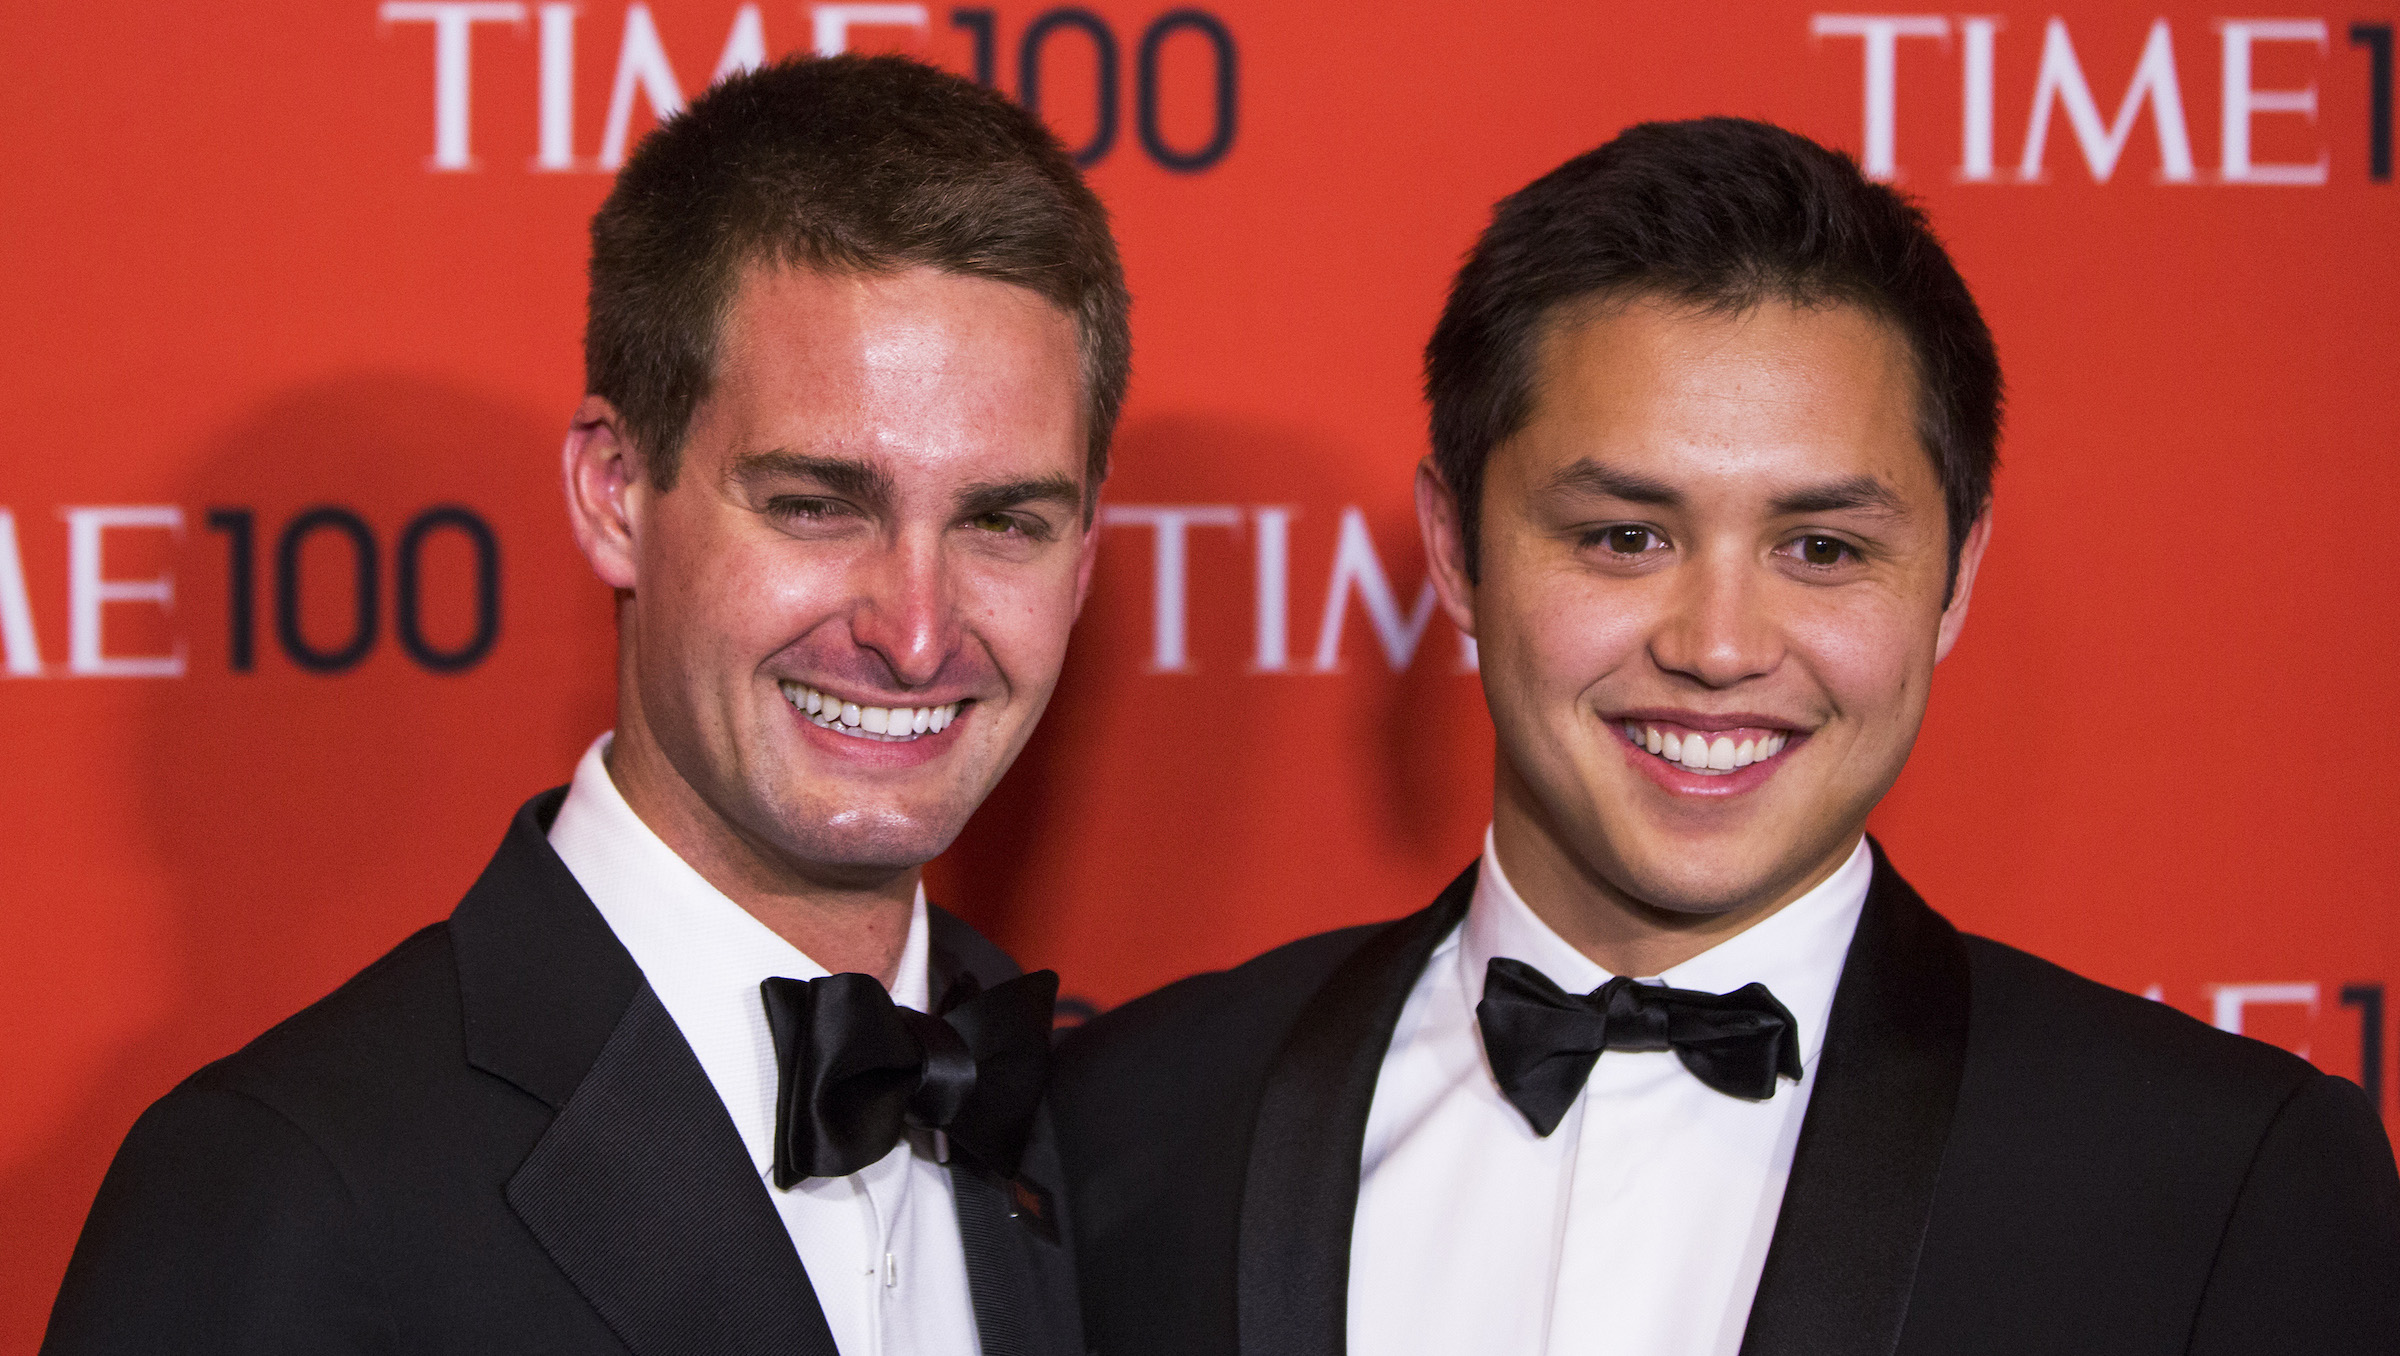 Honorees and Founders of Snapchat Evan Spiegel (L) and Bobby Murphy arrive at the Time 100 gala celebrating the magazine's naming of the 100 most influential people in the world for the past year, in New York April 29, 2014. REUTERS/Lucas Jackson (UNITED STATES - Tags: ENTERTAINMENT SCIENCE TECHNOLOGY BUSINESS) - RTR3N644